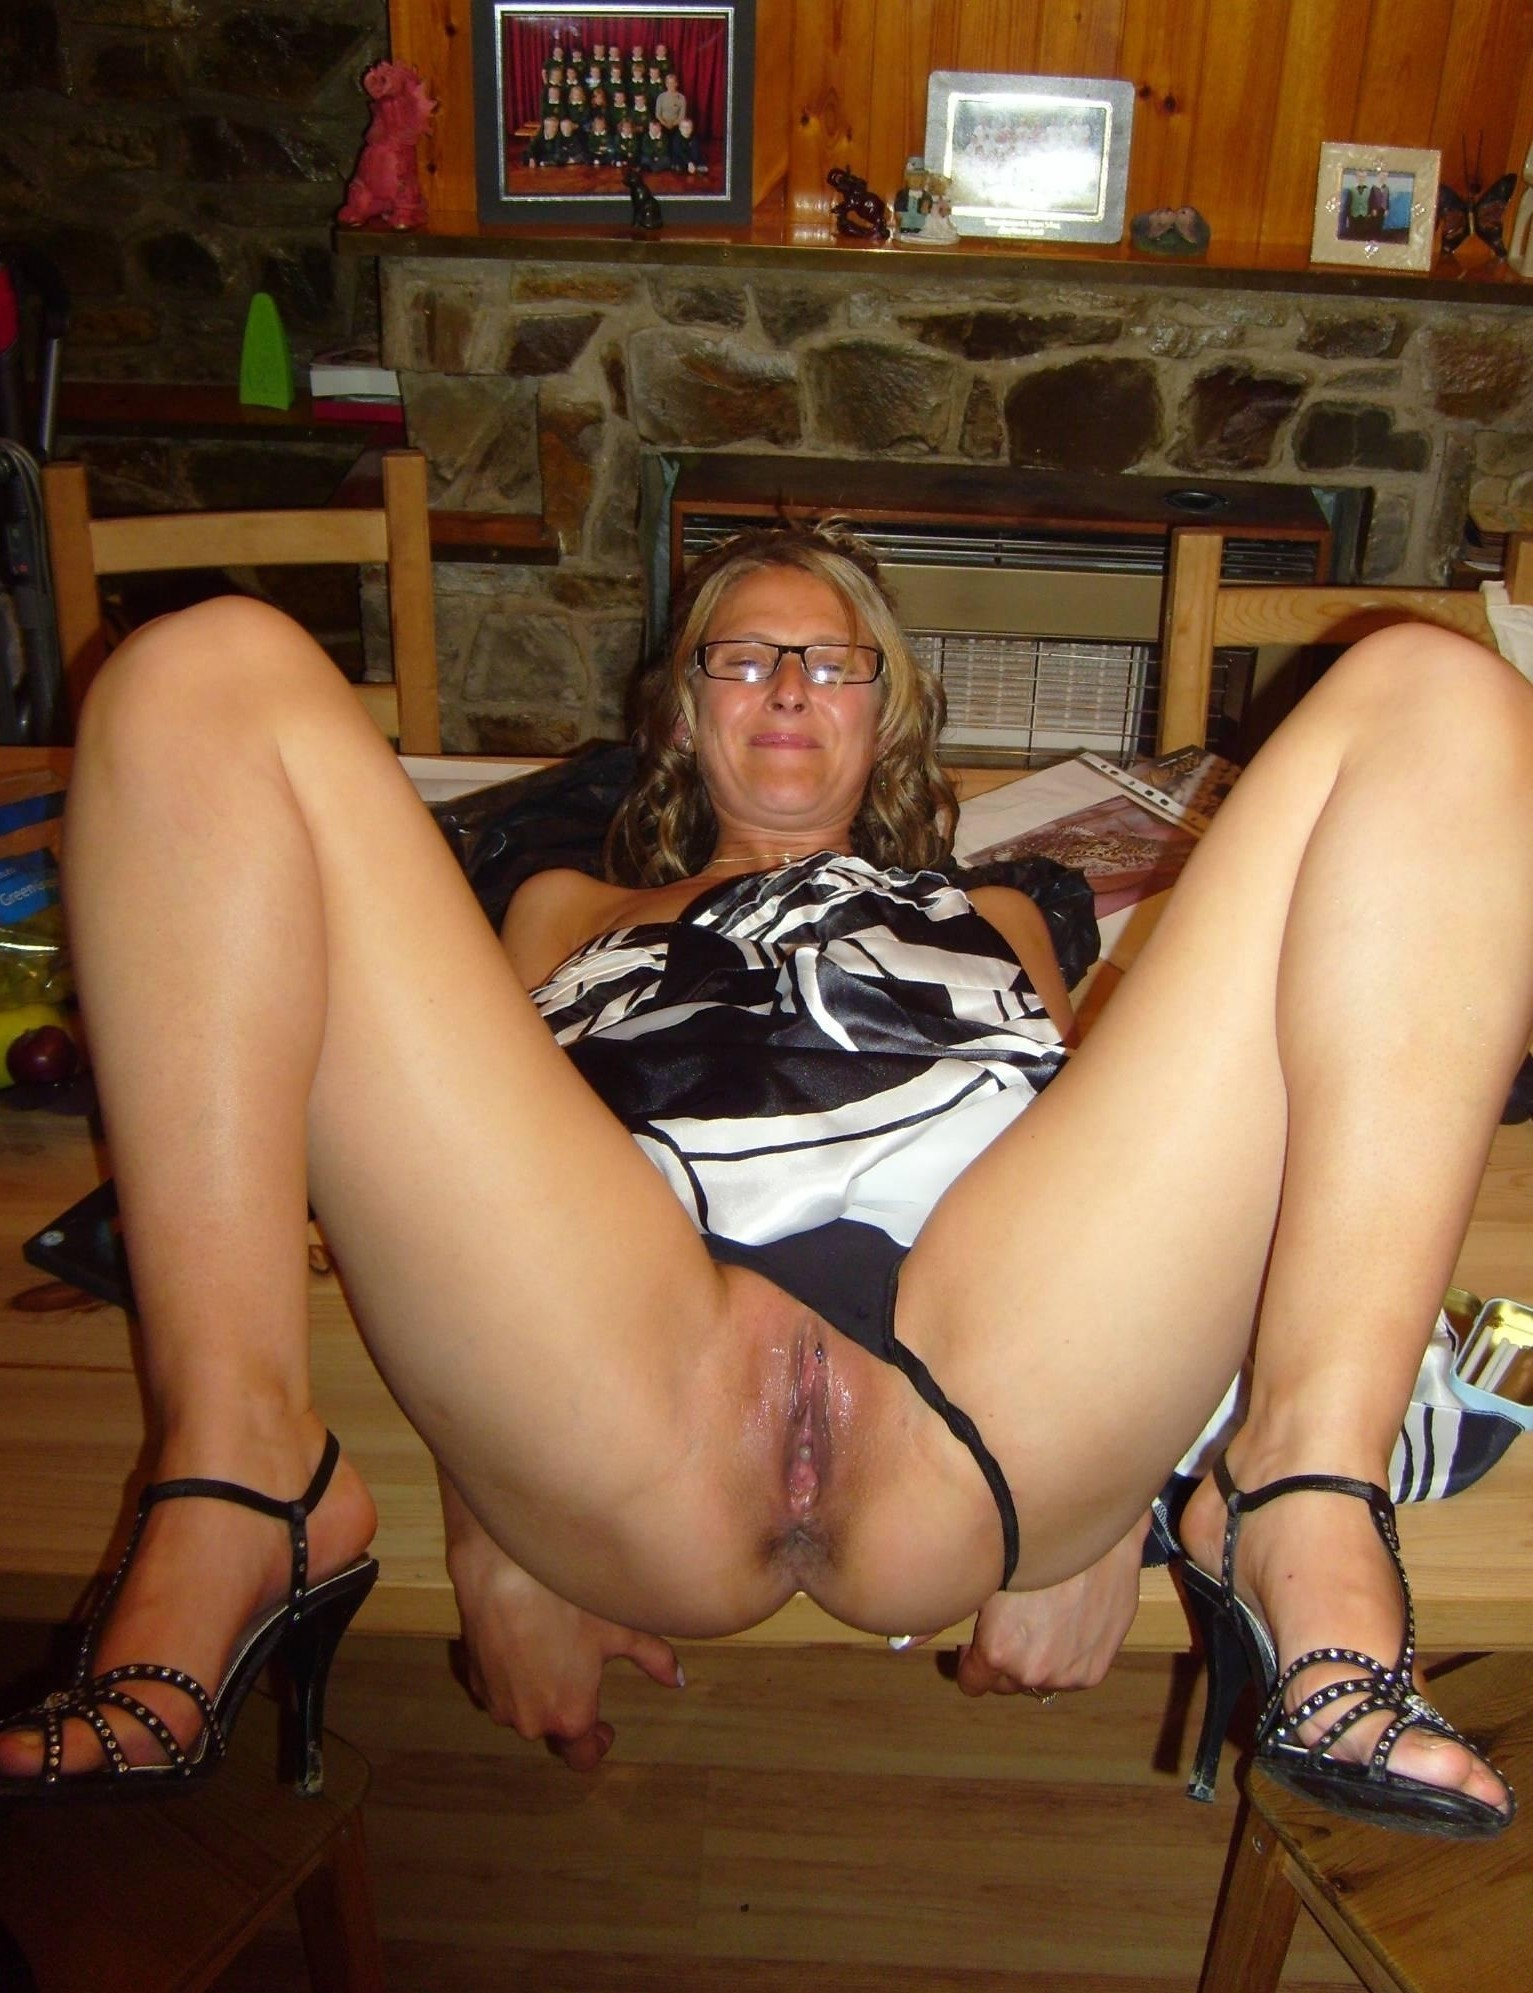 xxx mama free videos watch download and enjoy mama